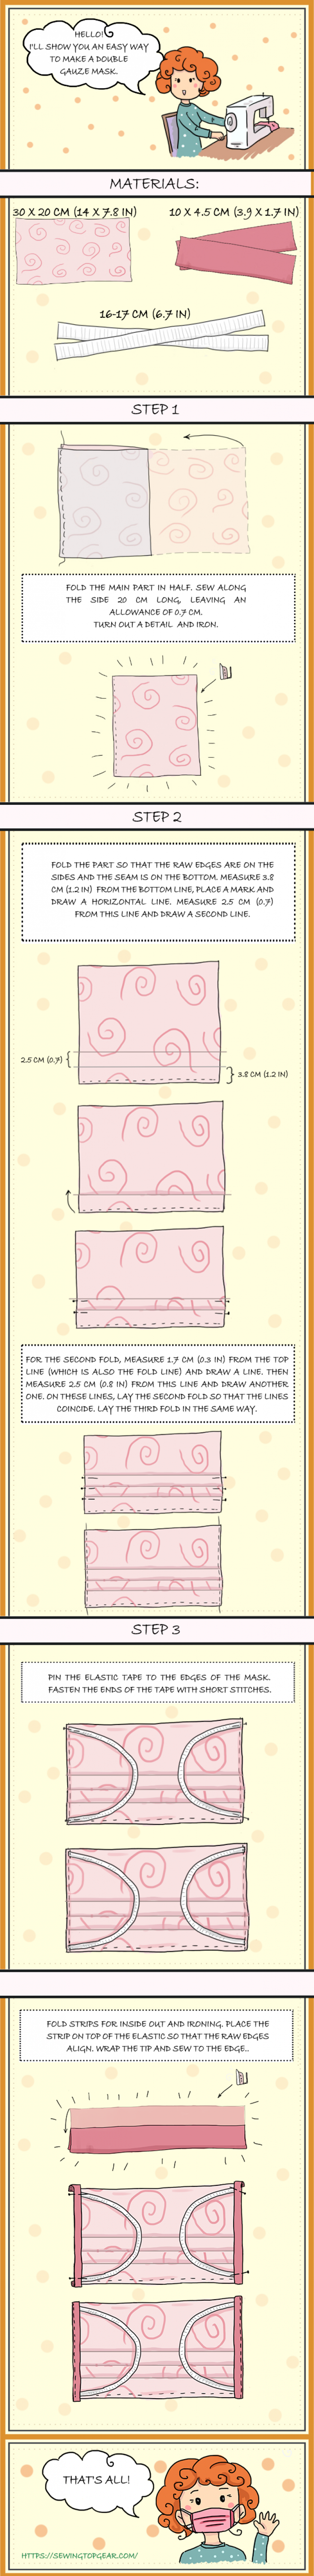 face mask sewing pattern infographic